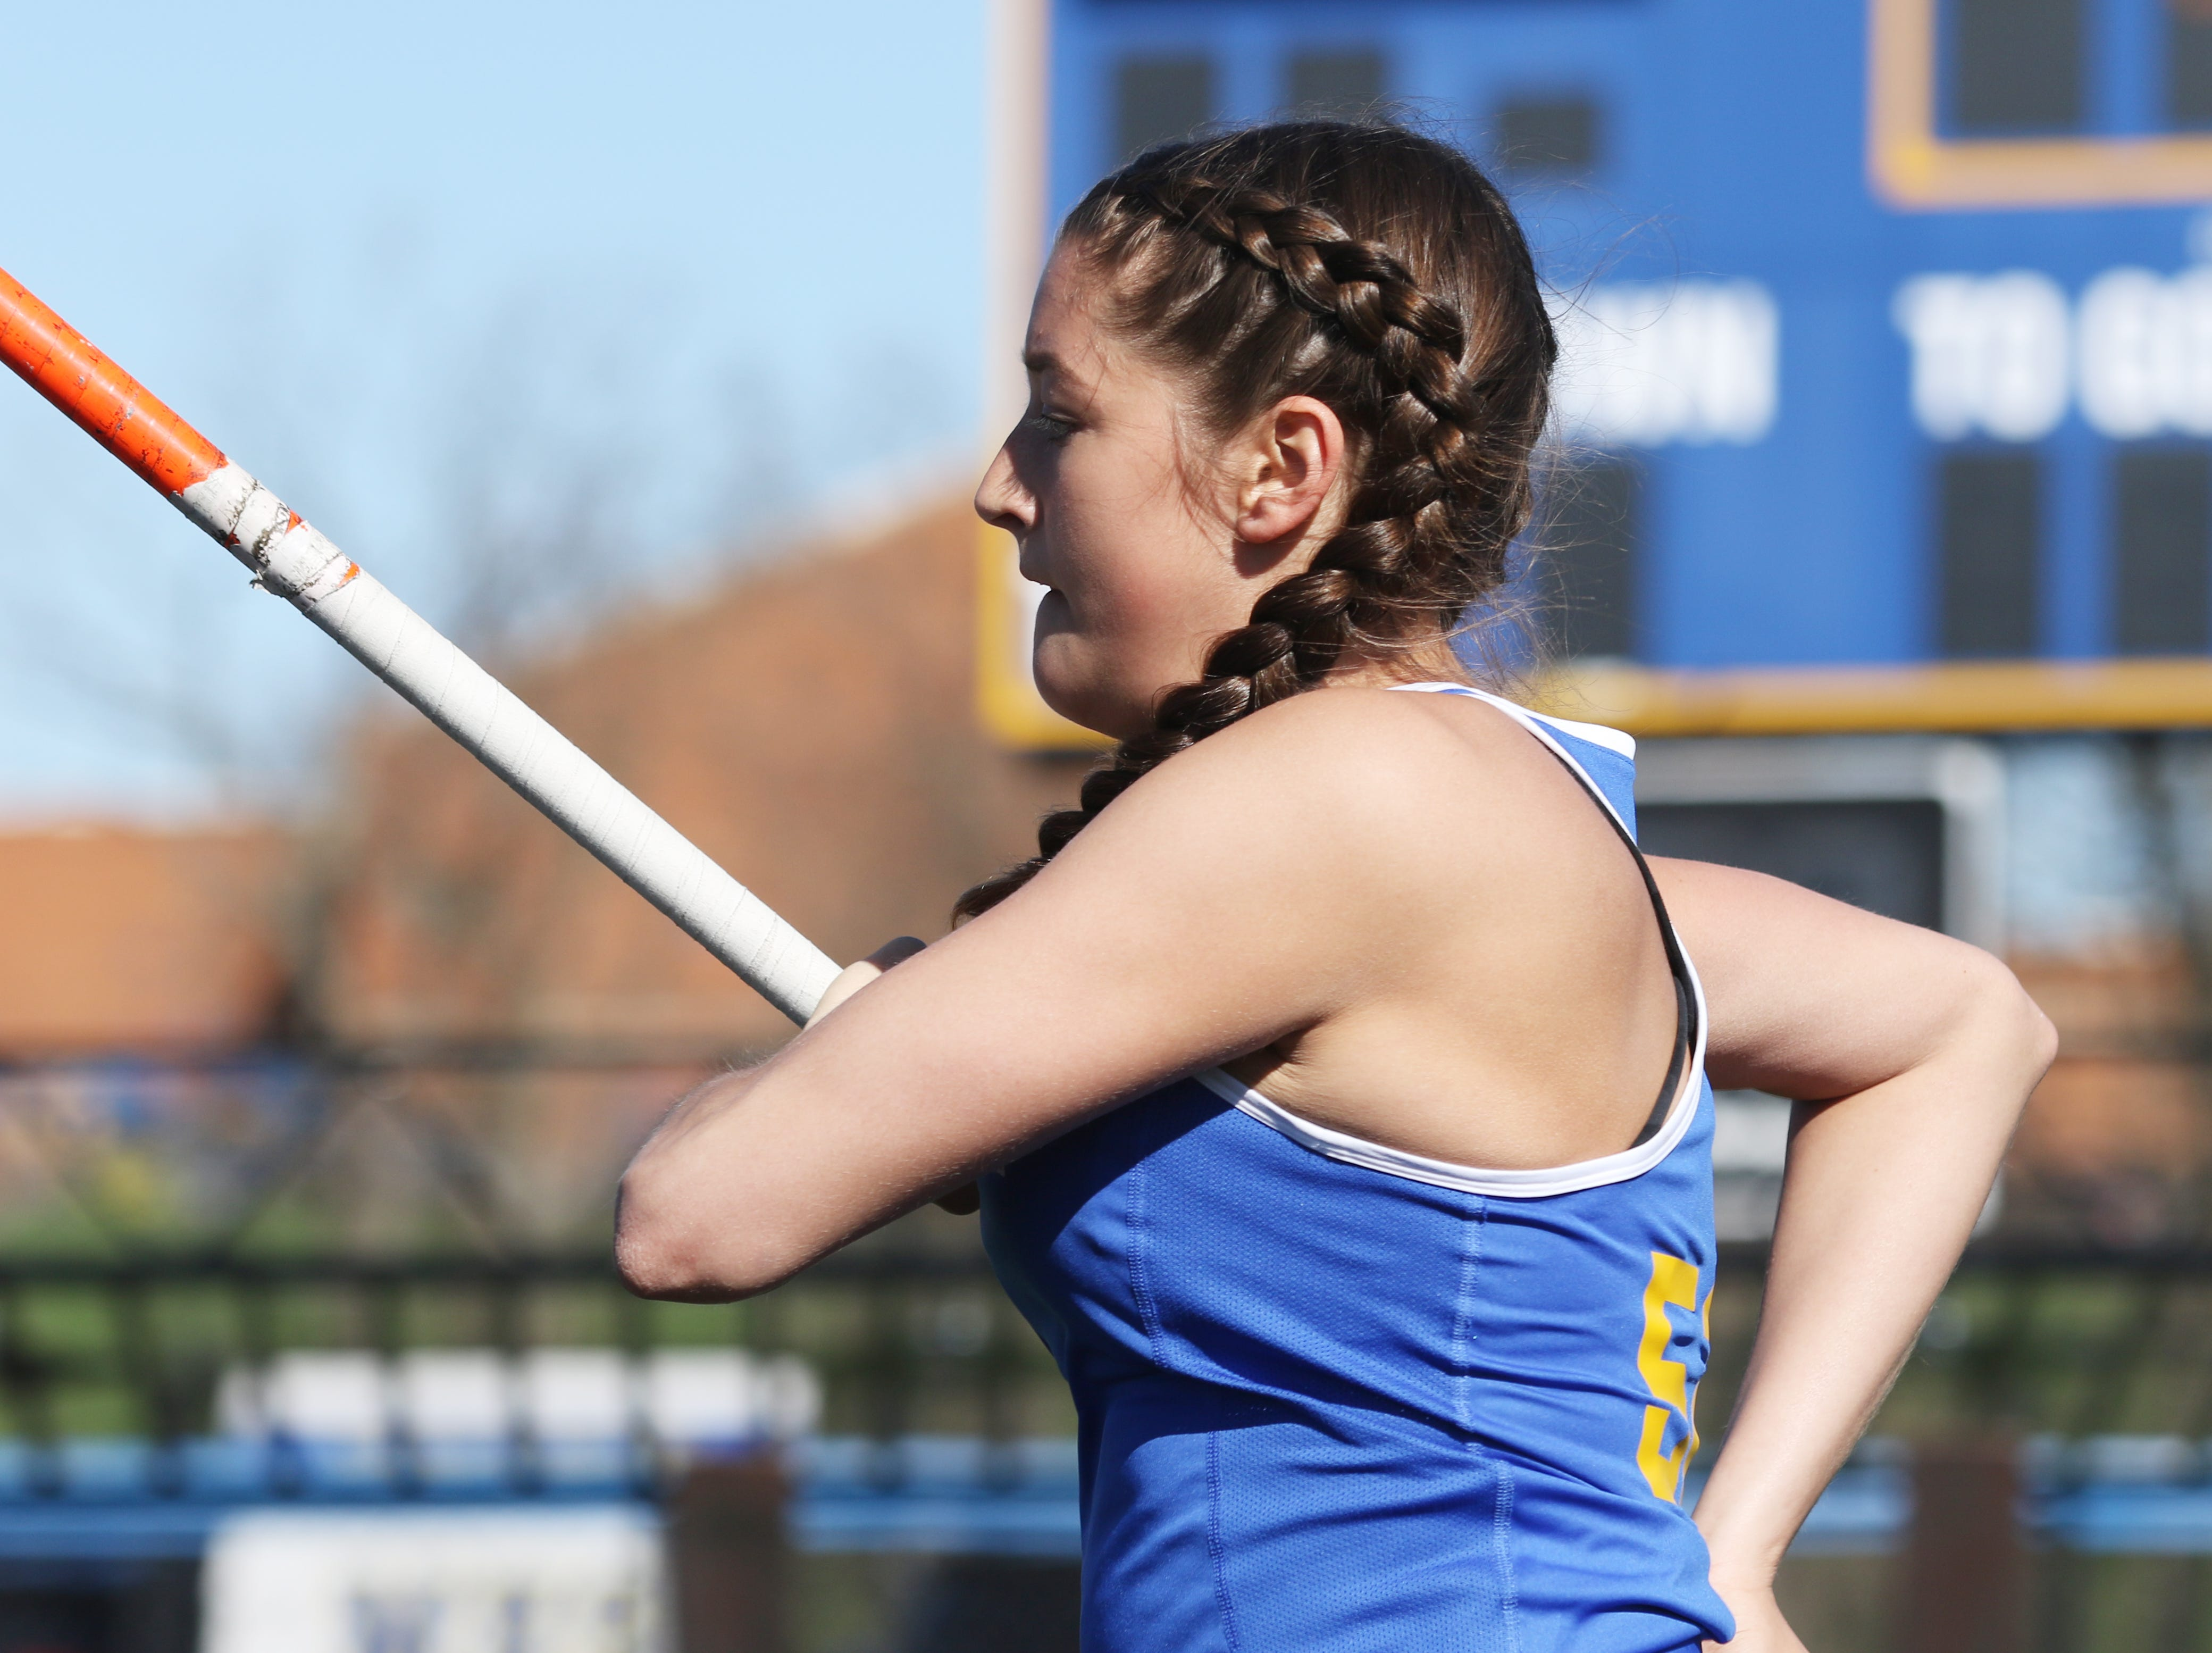 Maysville's Raeann Wilkes competes in the pole vault during Tuesday's tri-meet between Sheridan, New Lexington and host Maysville.